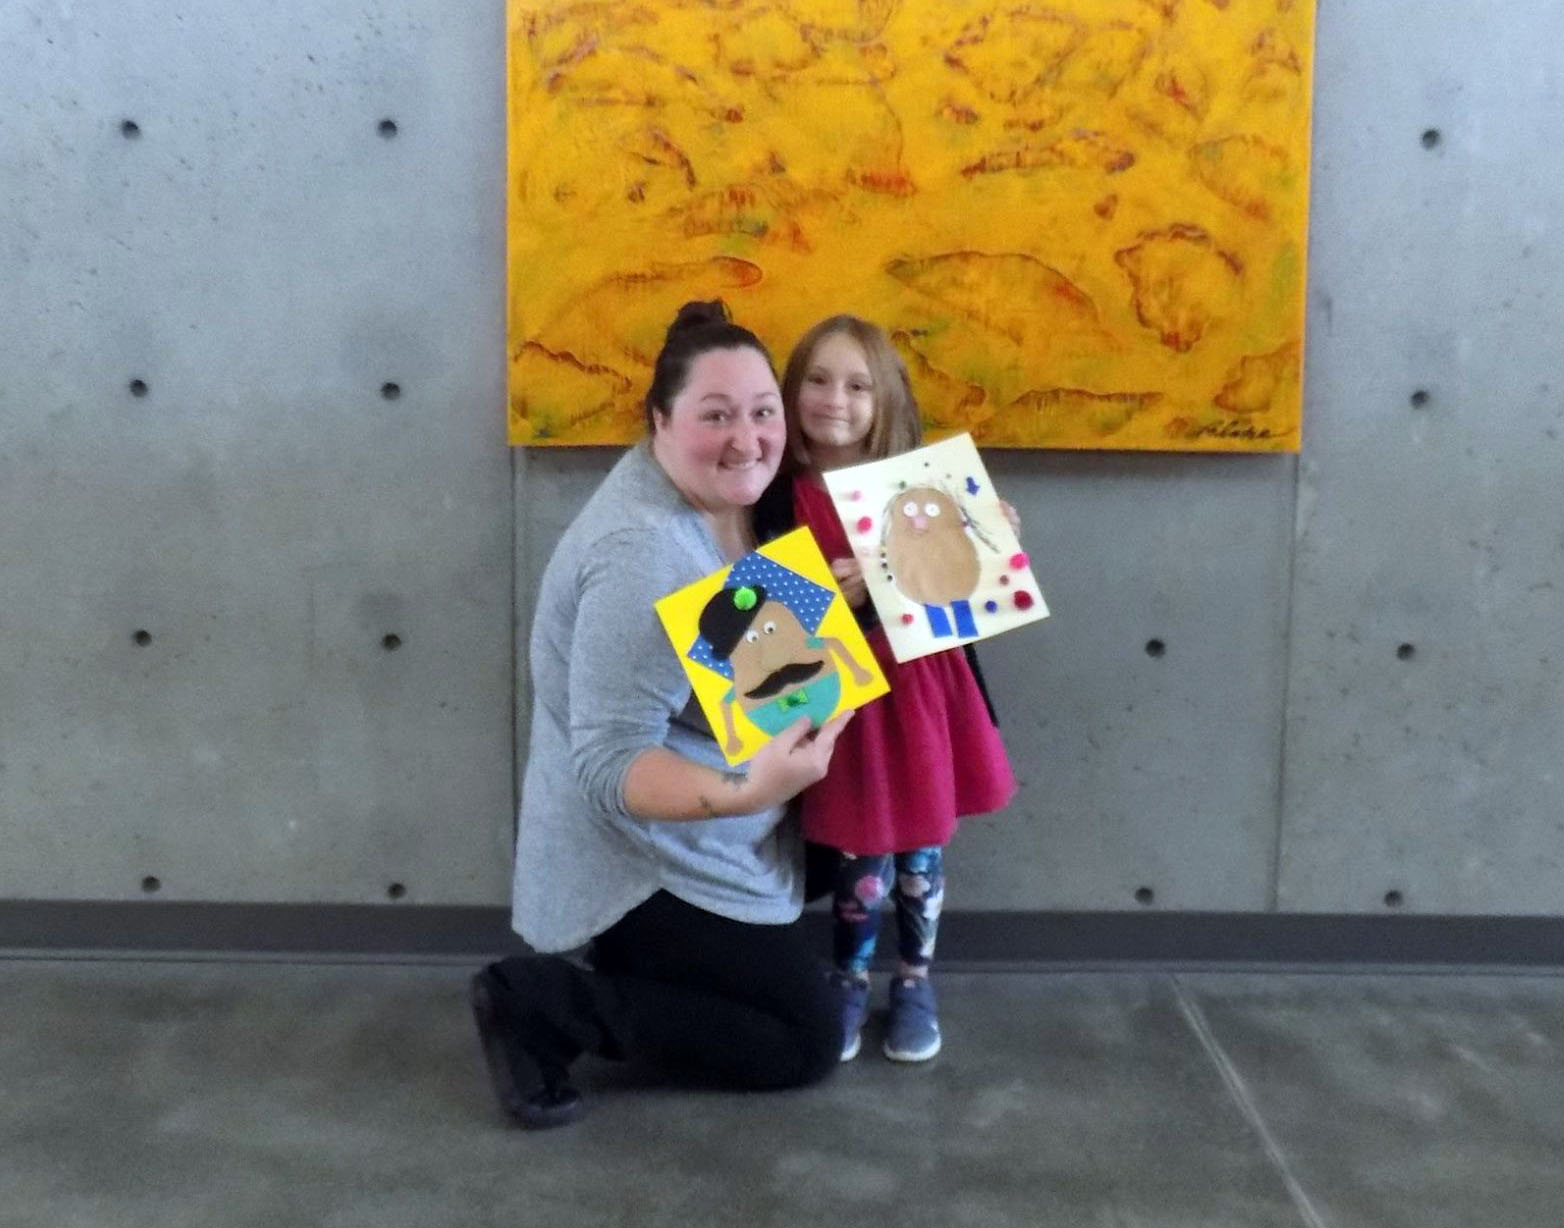 Woman and child showing off art work